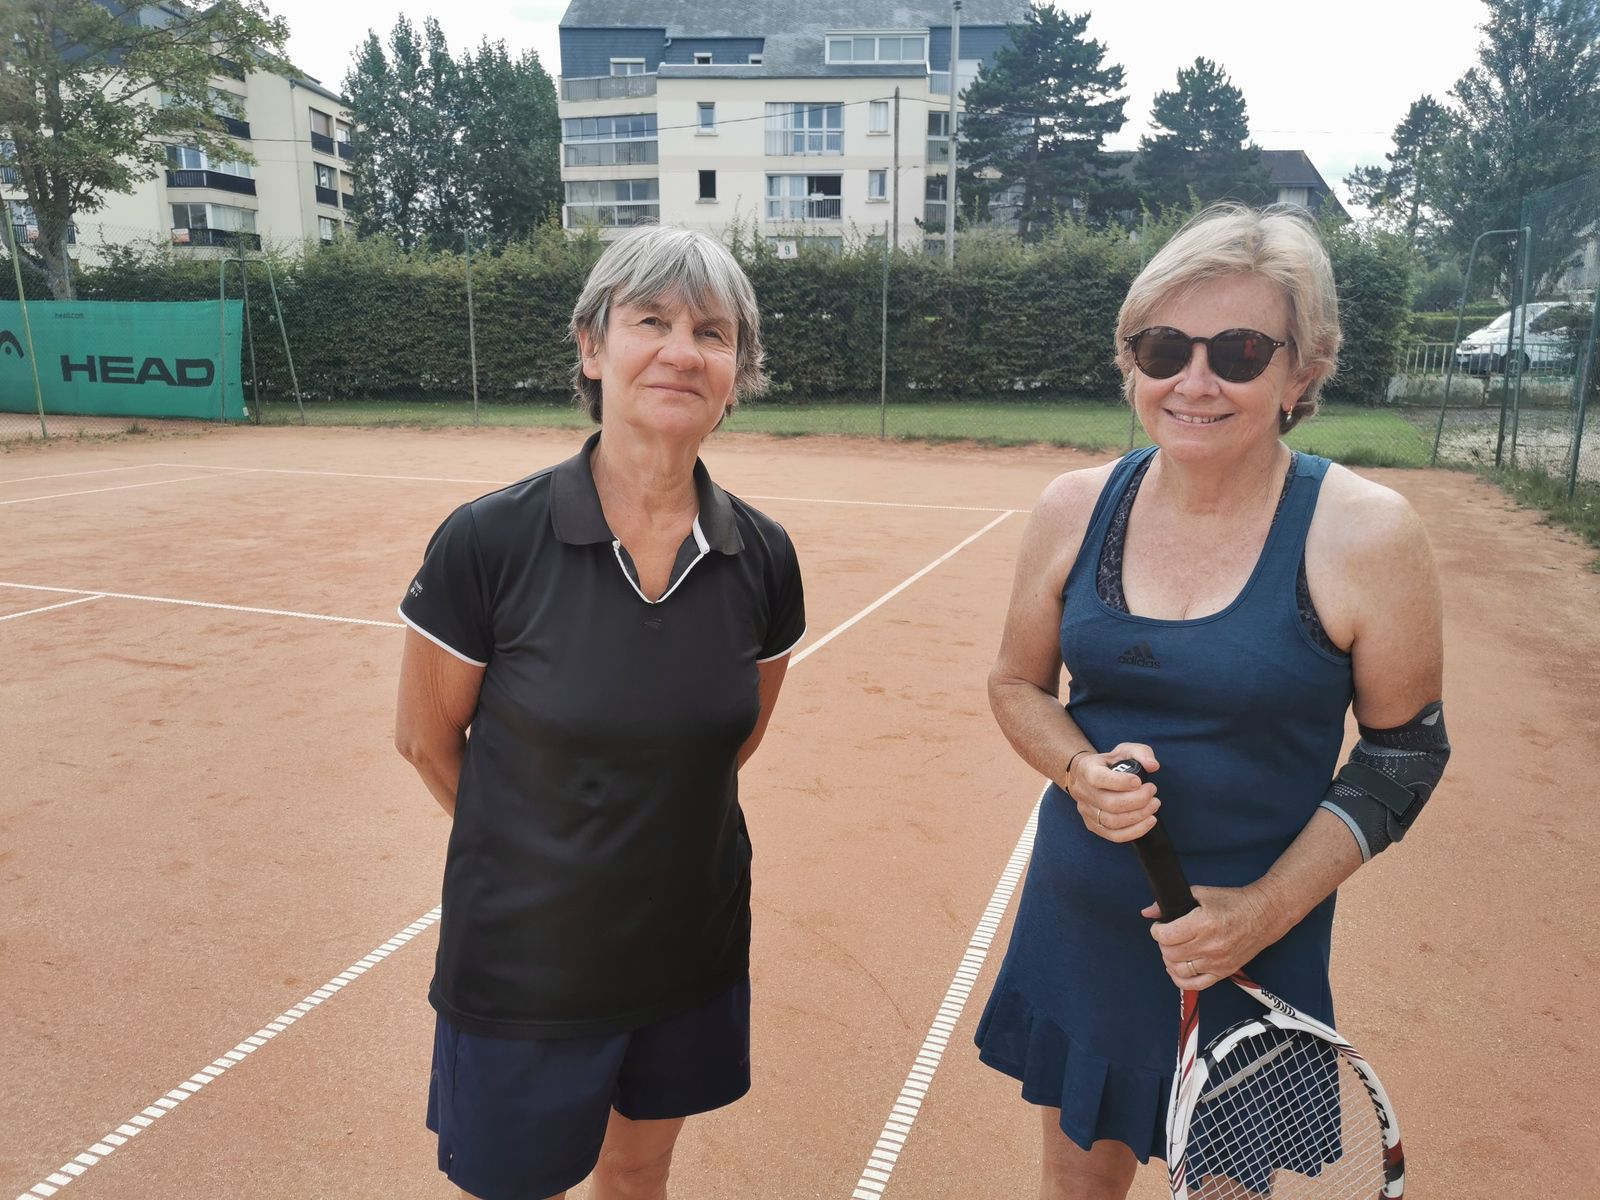 Patricia Broos 30/1 Cabourg perd contre Cynthia Petit 15/5 Liberty Country Club